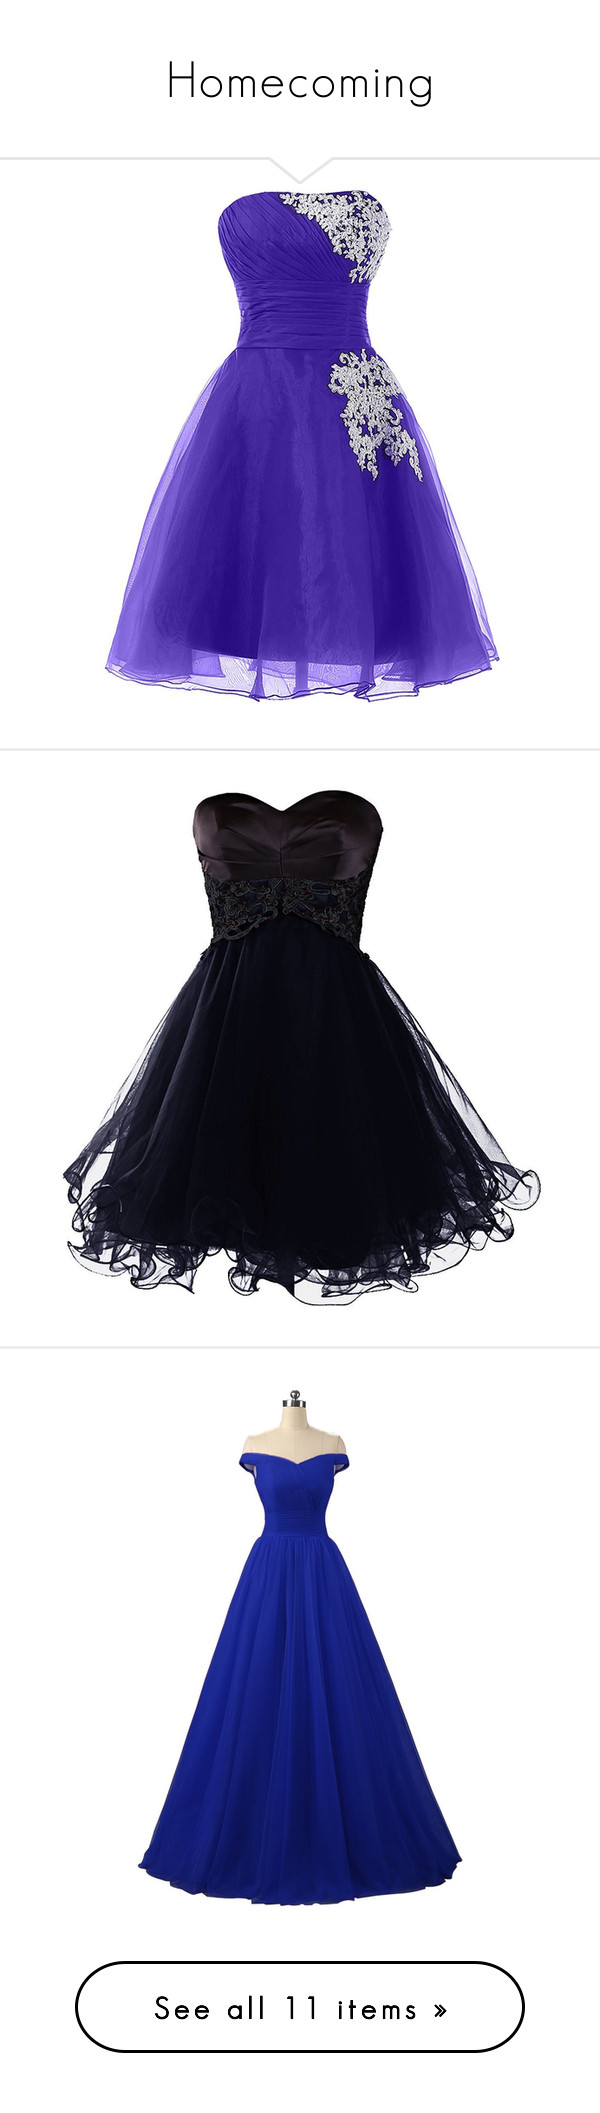 Lace dress purple  Homecoming